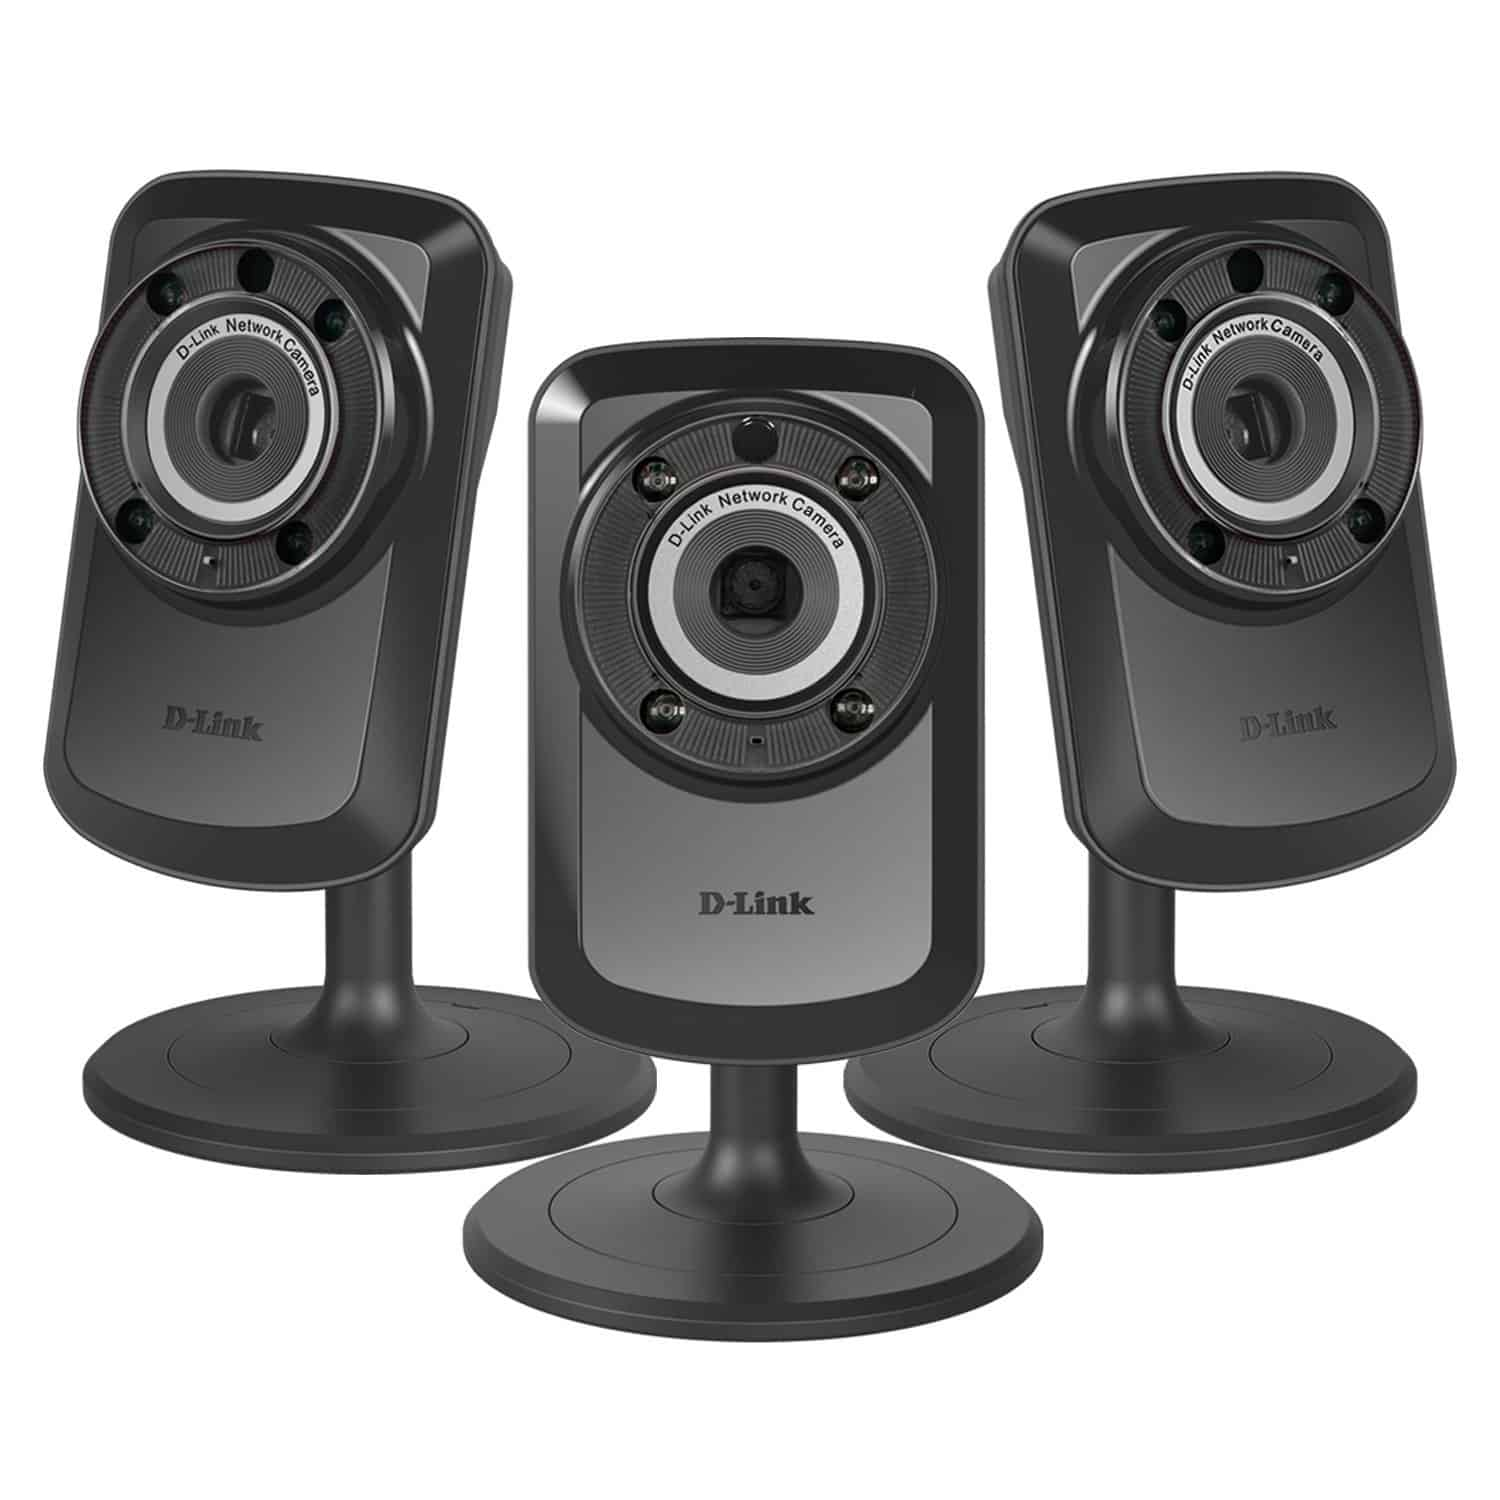 Top Wireless Security Camera Systems That Deliver Now And